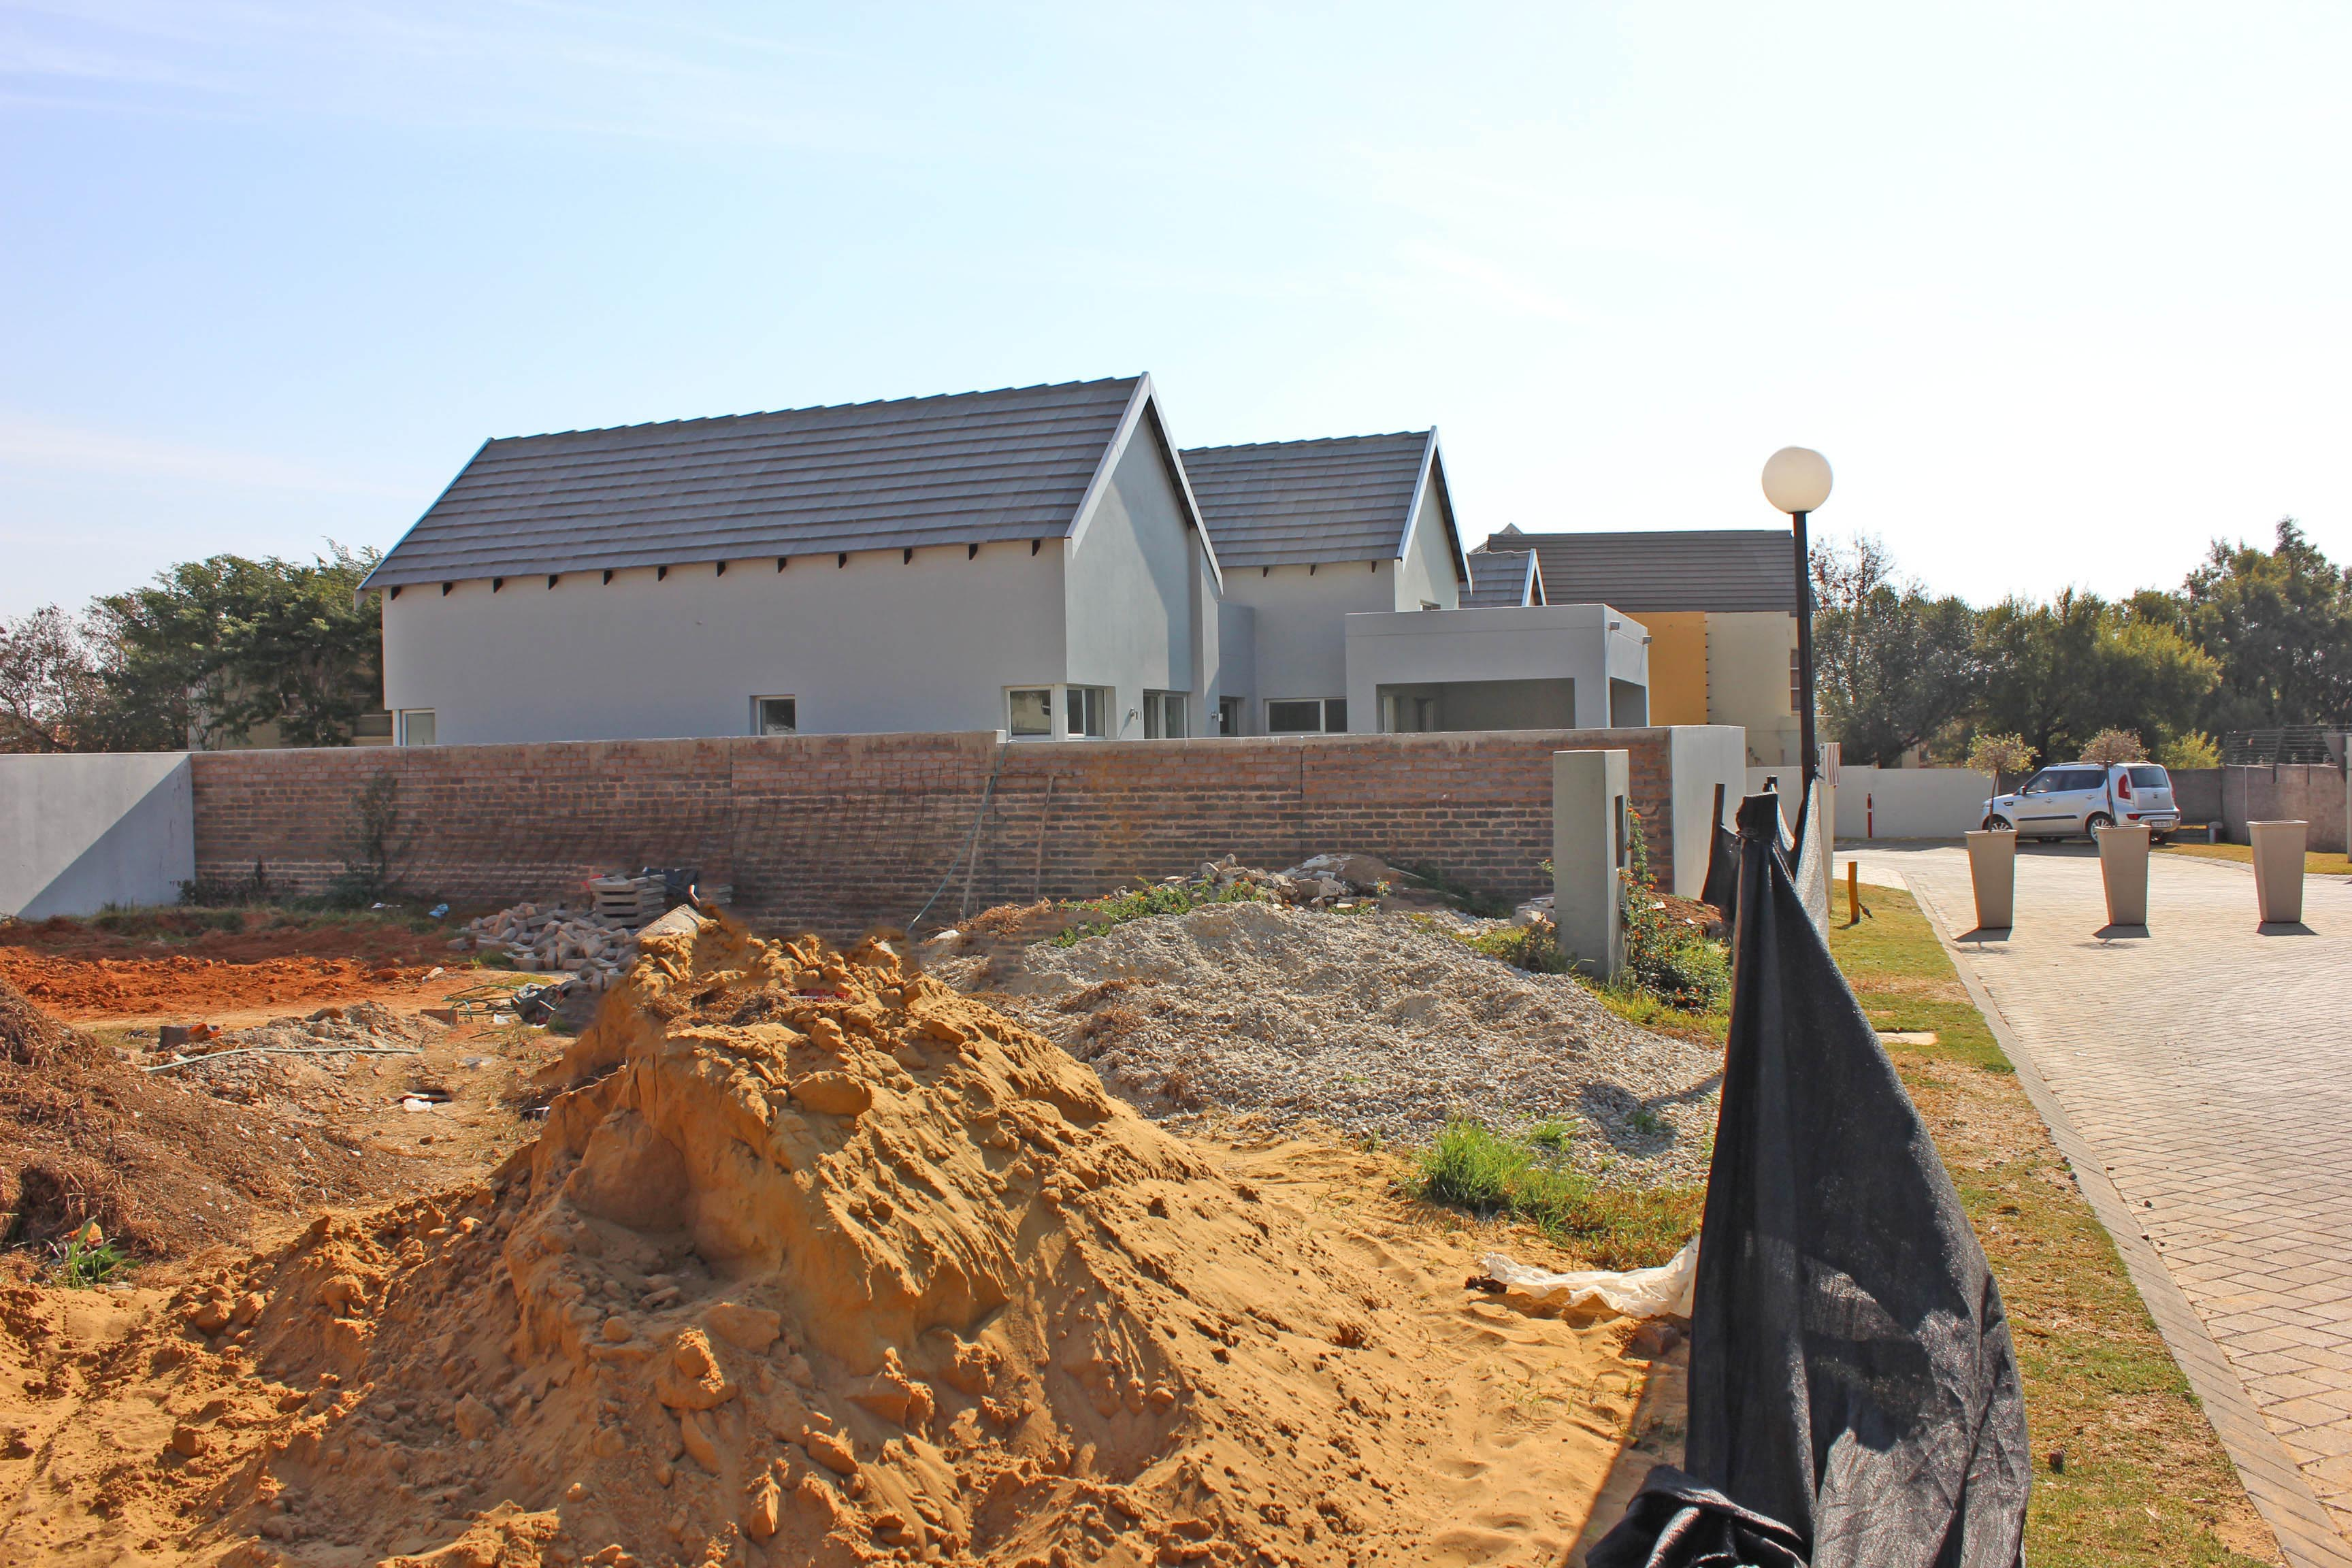 3 Bedroom Townhouse for sale in North Riding ENT0075308 : photo#23